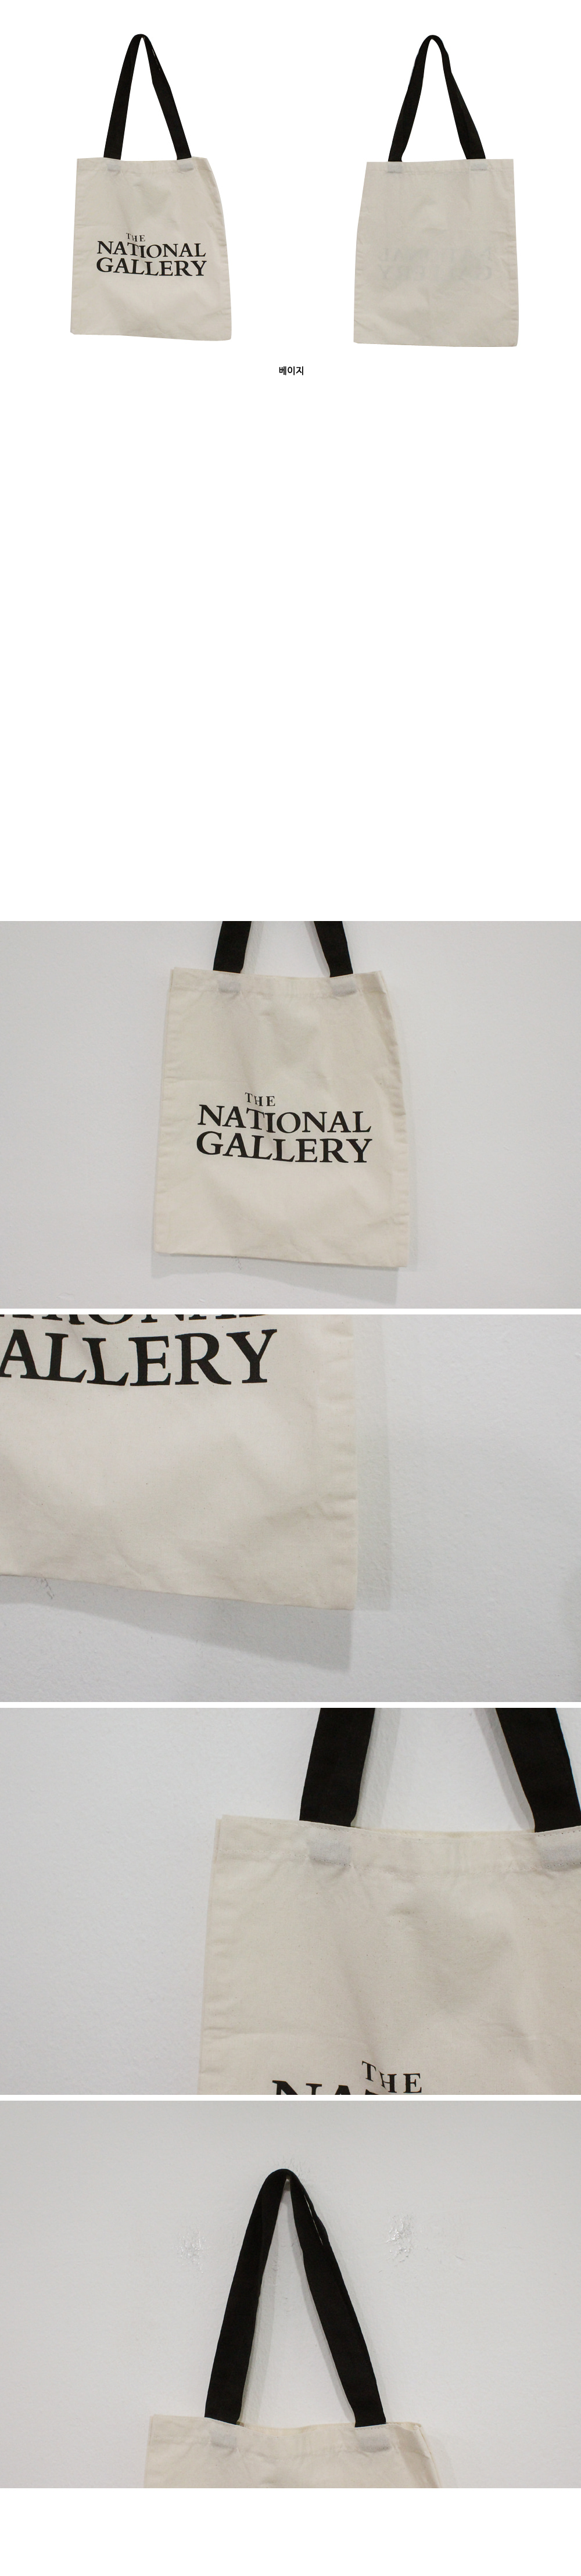 National Gallery eco bag